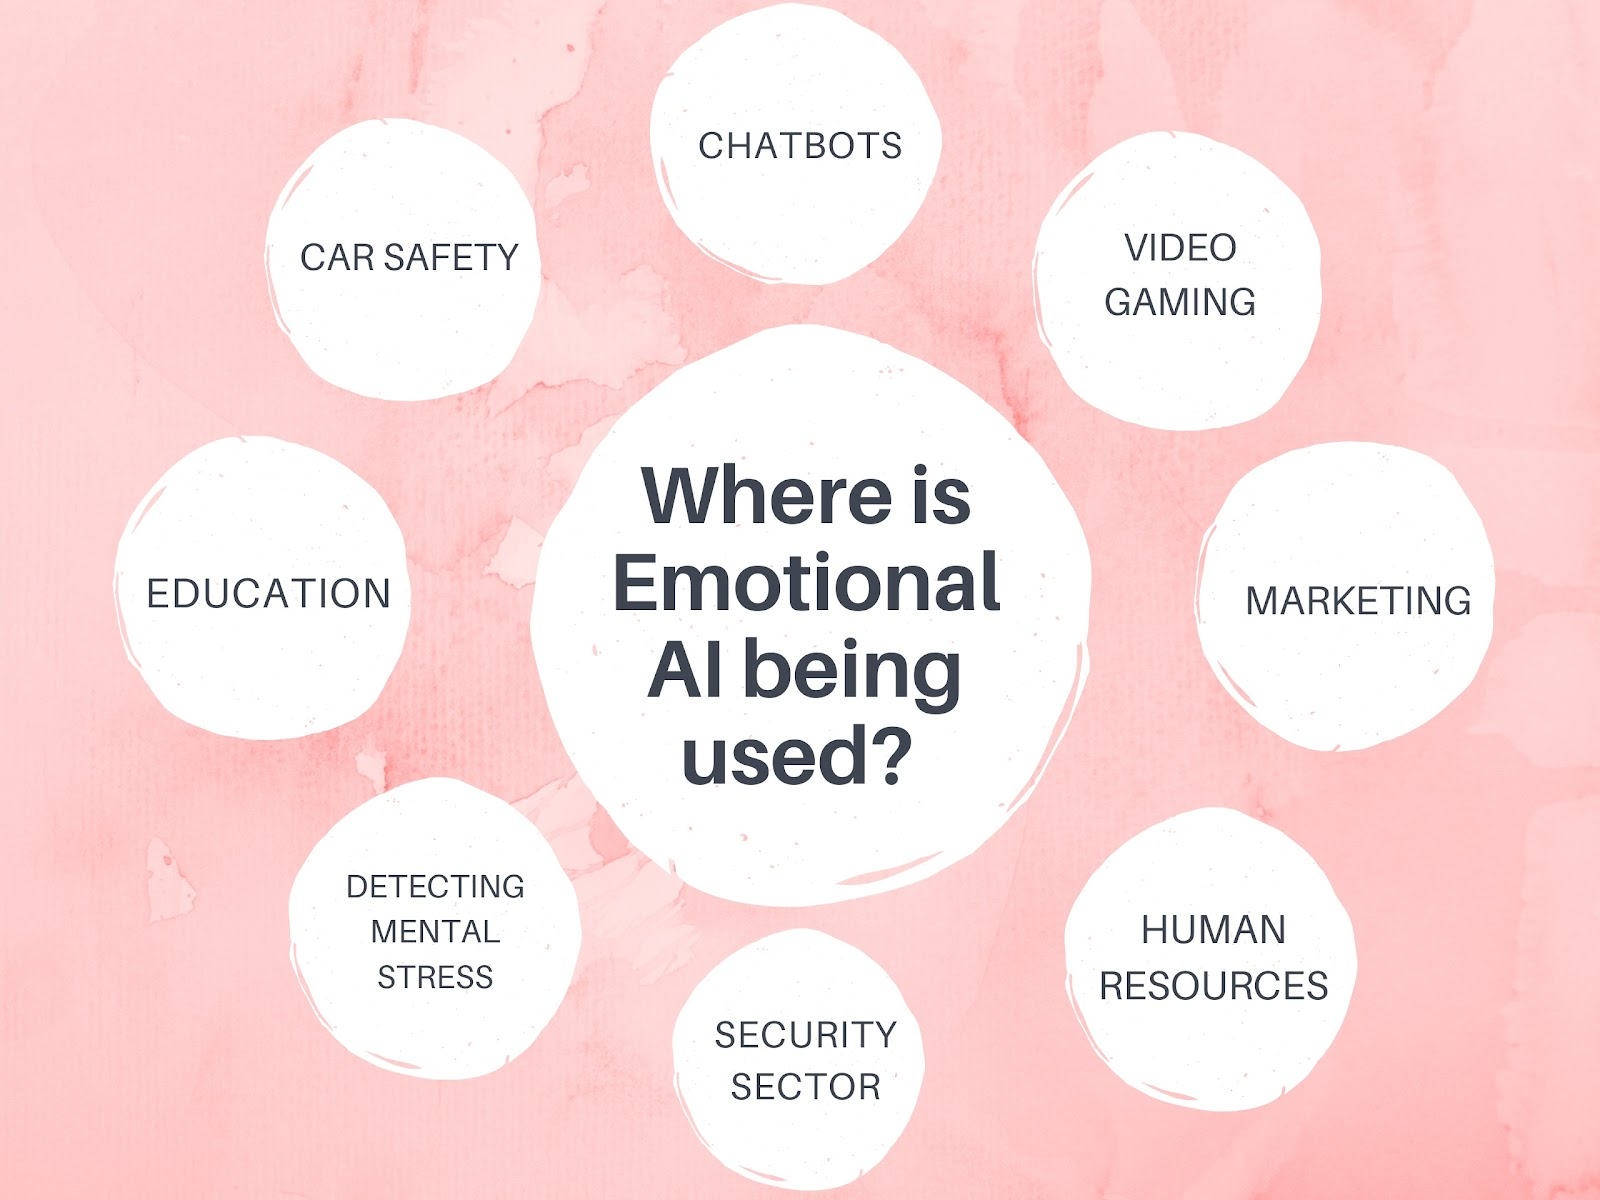 From its use in education, chatbots, video gaming, marketing, the security sector, human resources, safety, or in detecting mental stress, there are many applications of Emotional AI.